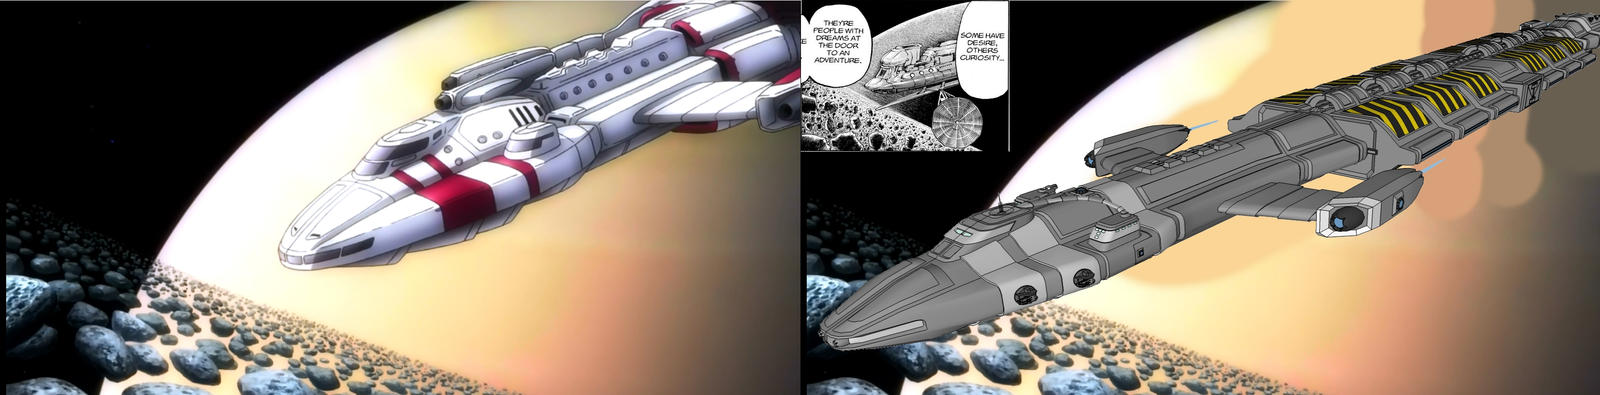 My Hydra Freighter vs ship in Space Brothers anime